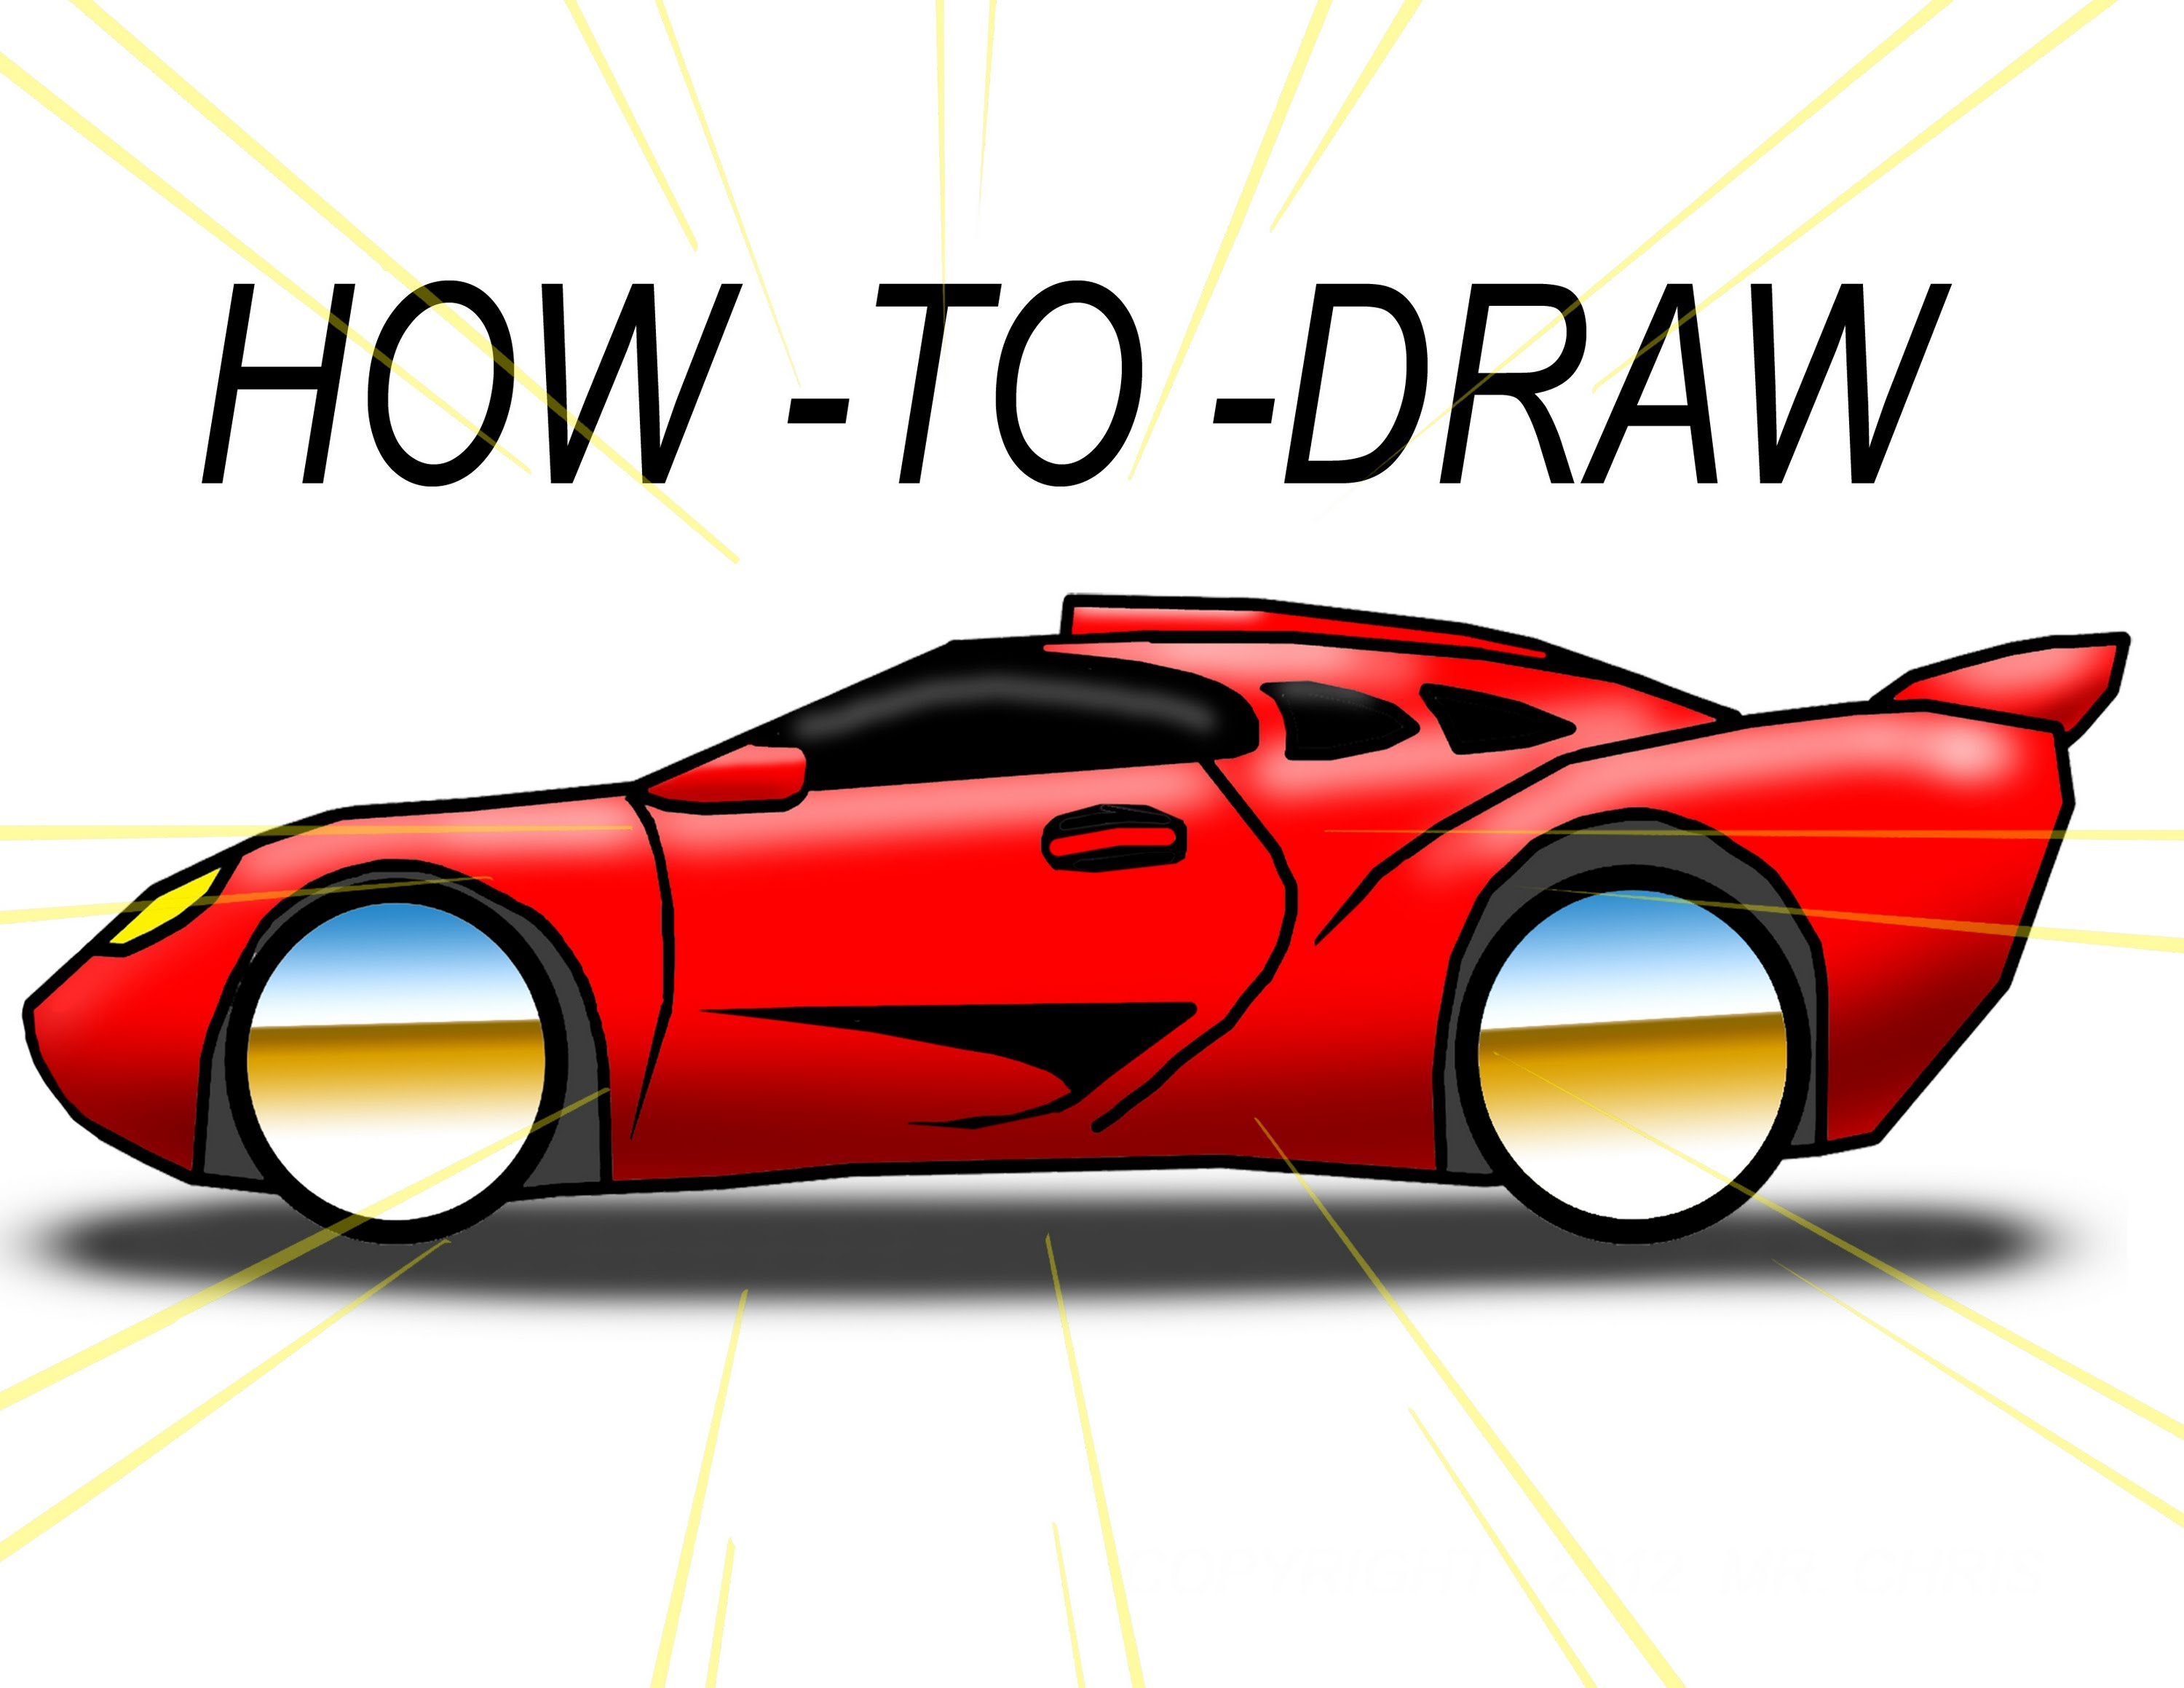 How To Draw cartoon EXOTIC CAR ( The EZ Way) - YouTube